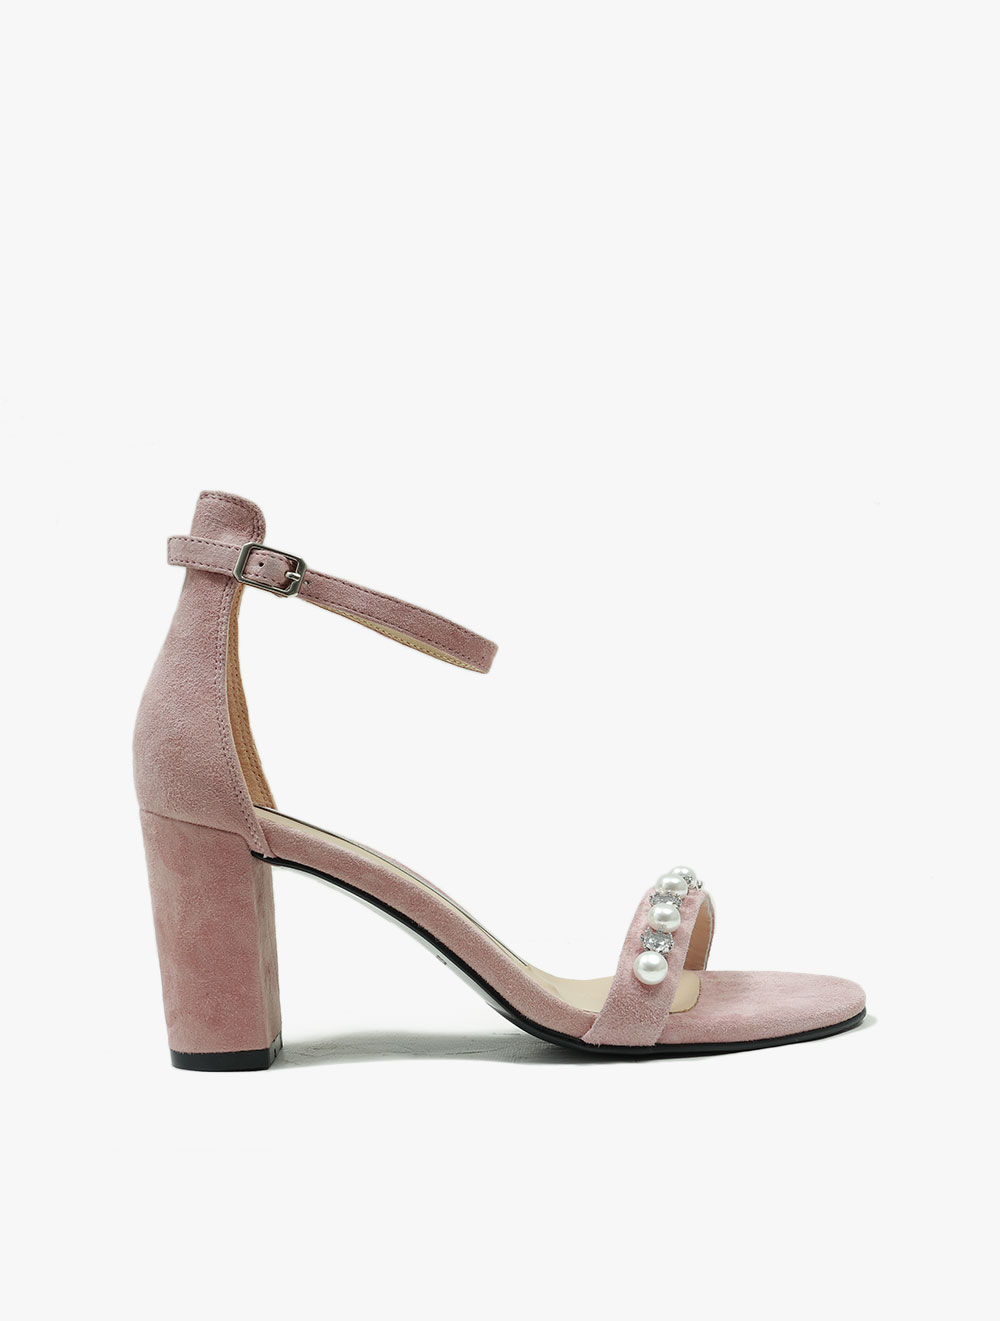 The Original Branded And Latest Shop Women For Shoes QdWrCexBo